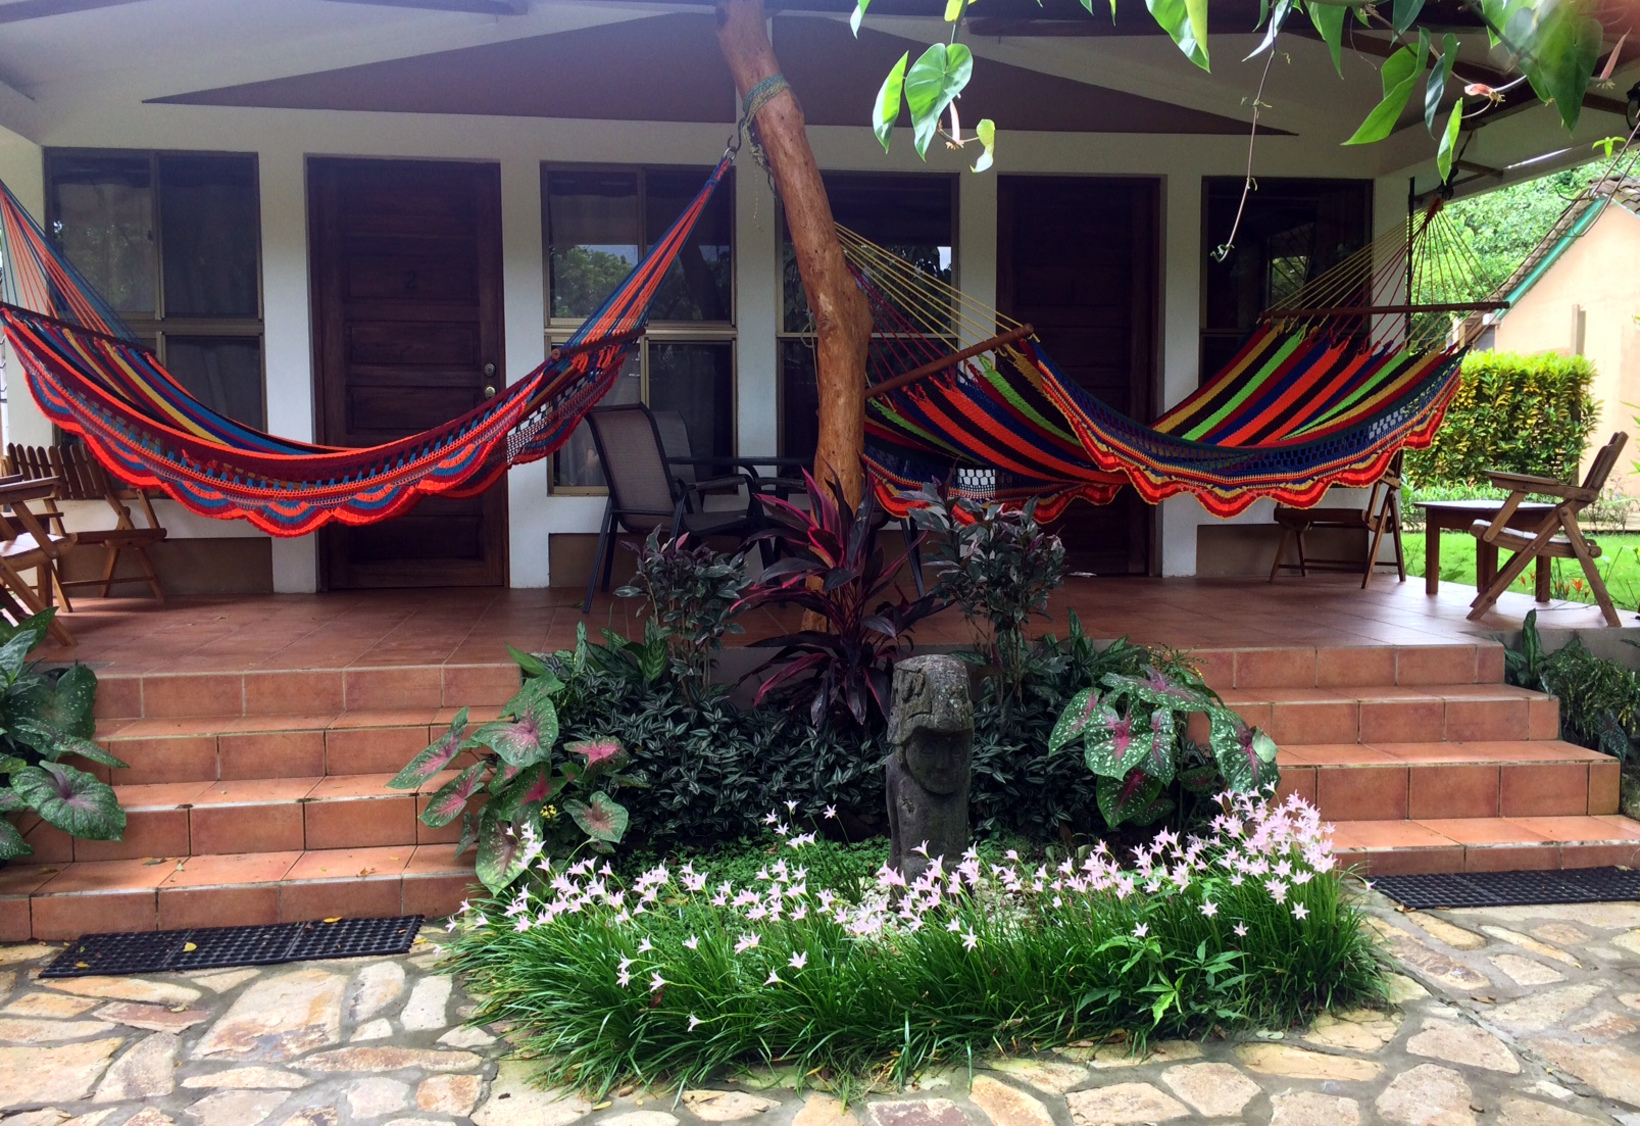 Porch of Deluxe room #1 & #2